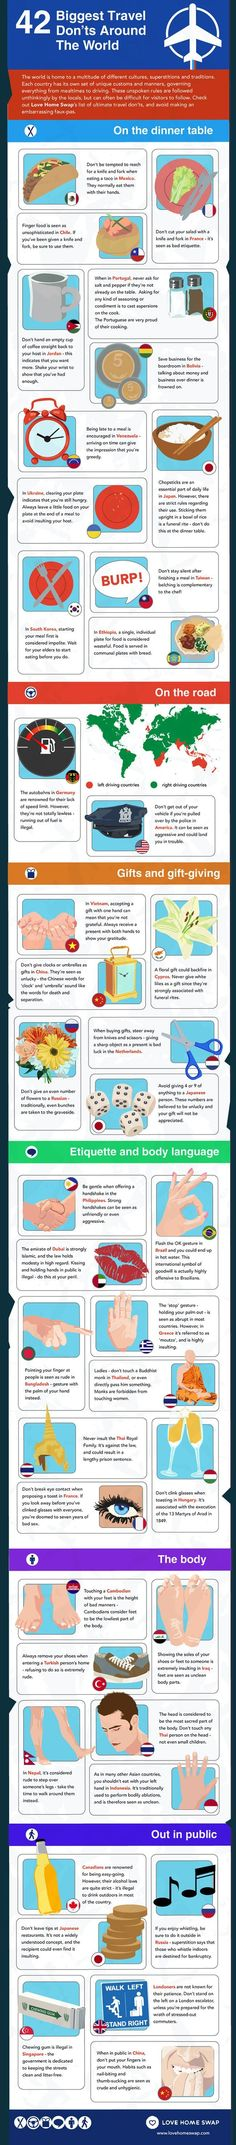 42 Biggest Travel Don'ts Around The World travel vacation tips infographic infographics vacations good to know abroad Travel Info, Travel Bugs, Travel Advice, Time Travel, Places To Travel, Travel Guide, Travel Destinations, Travel Hacks, Travel Things